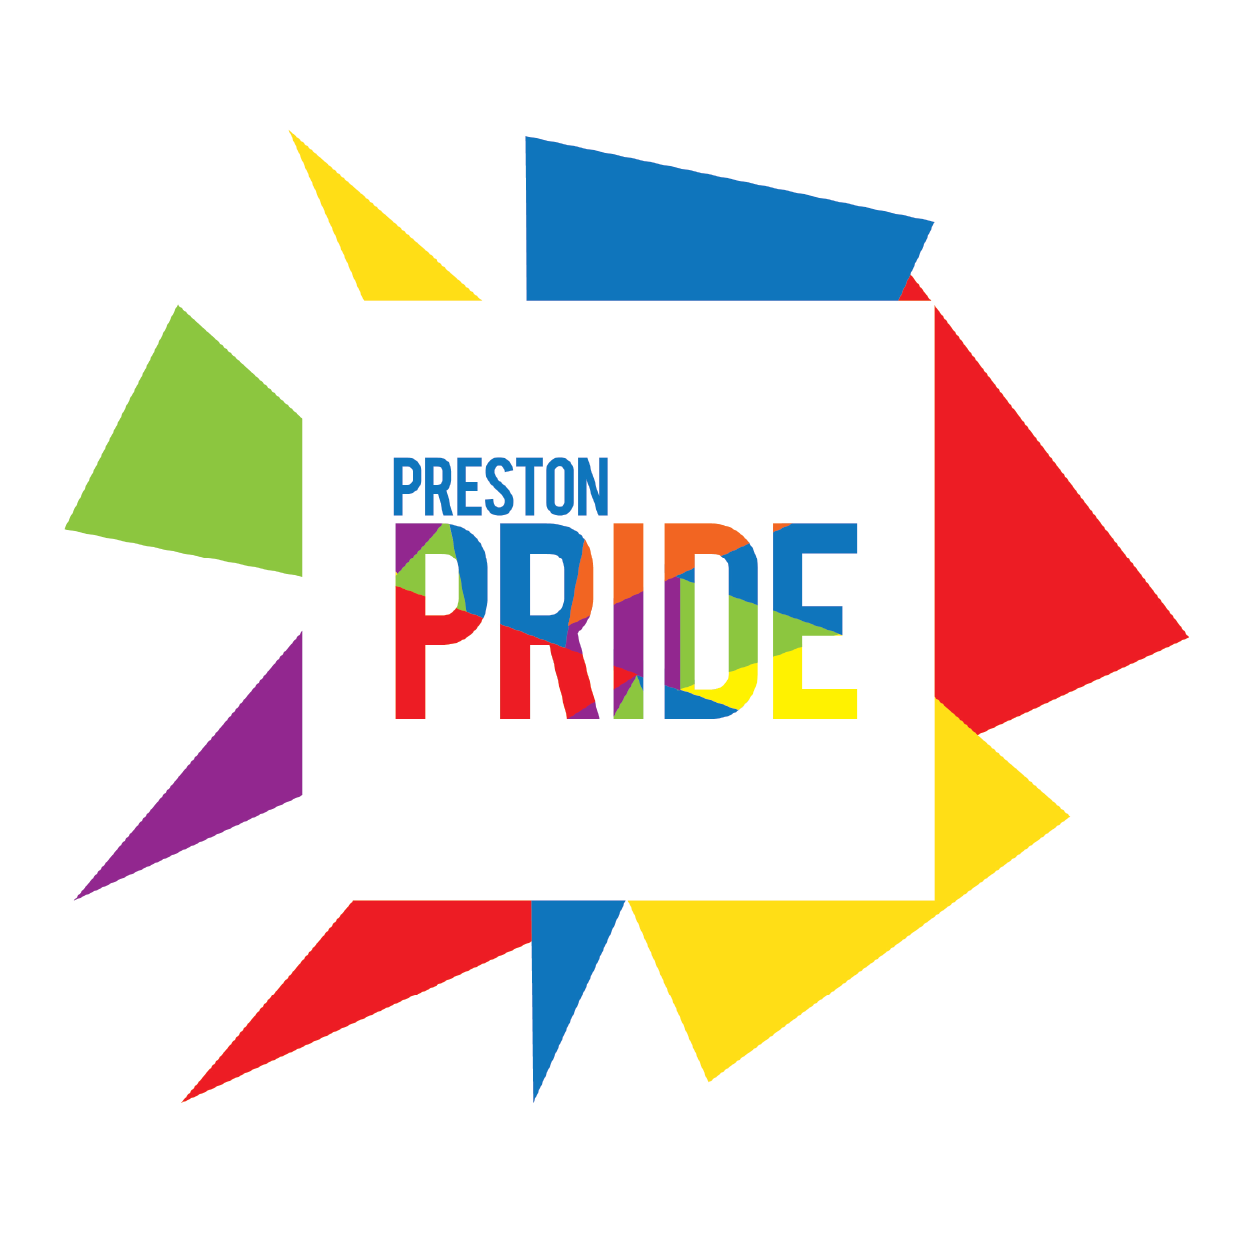 Preston_Pride-01.png